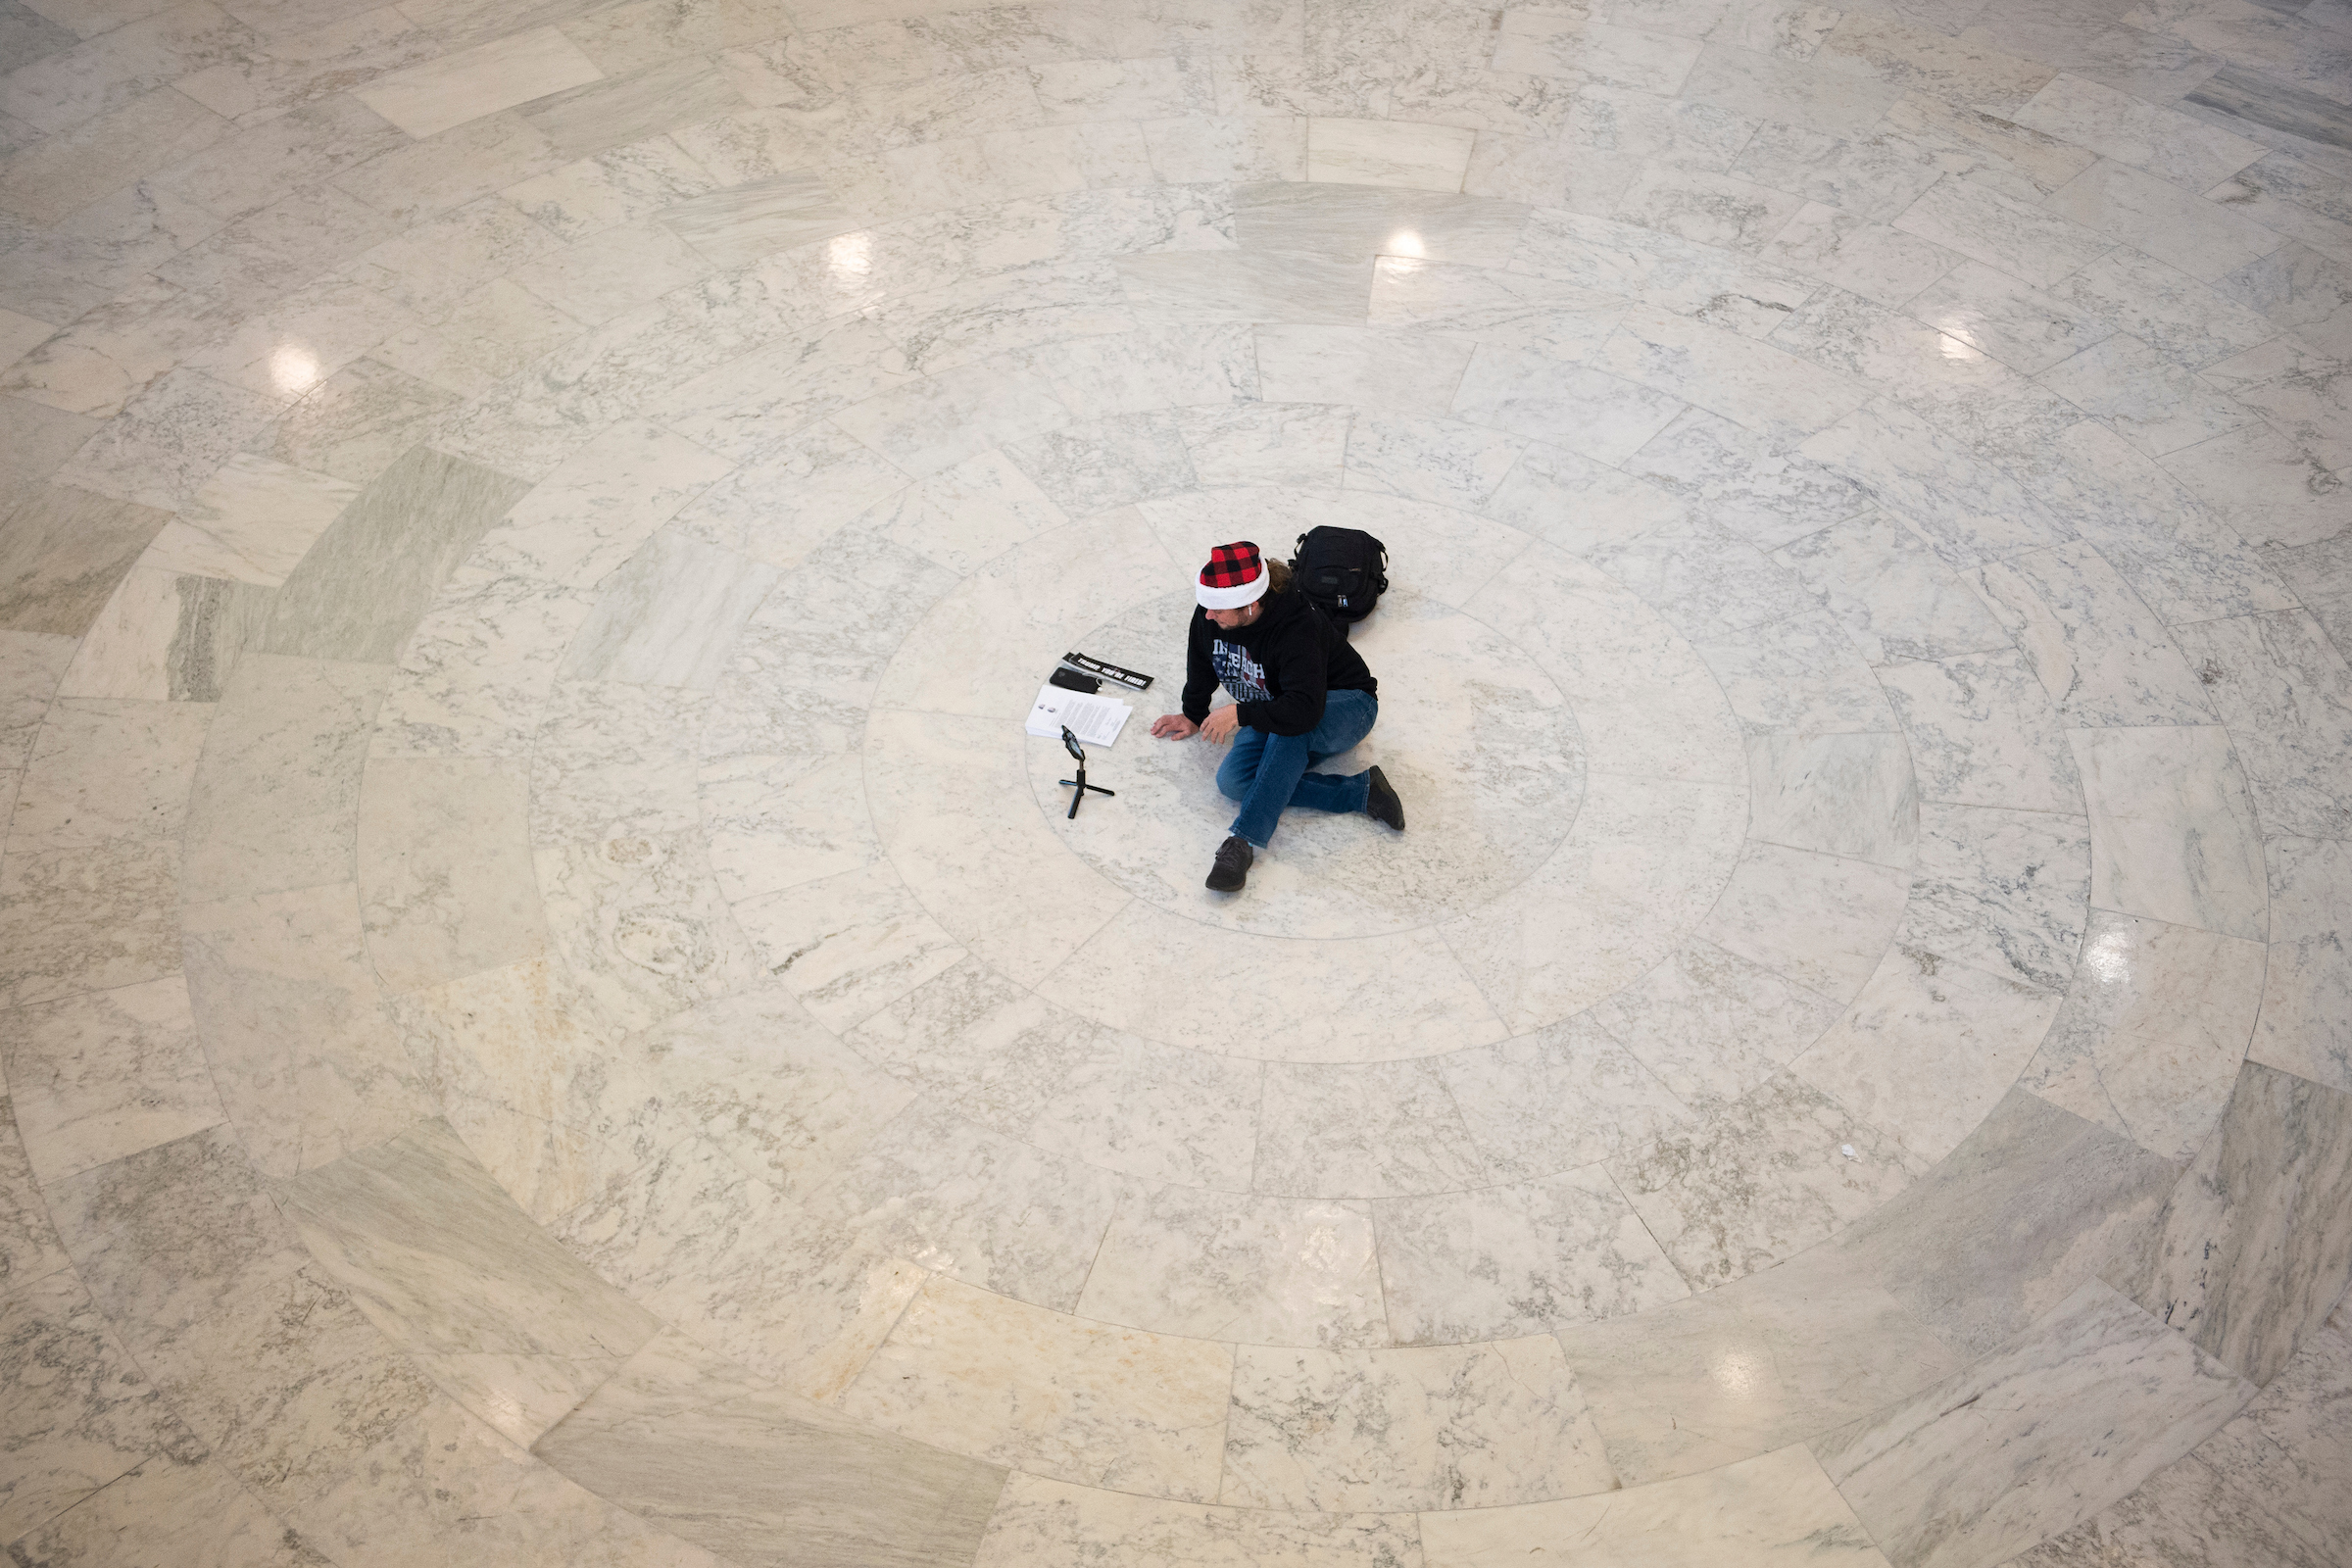 A pro-impeachment demonstrator records a video on a smartphone in the Cannon rotunda on Wednesday. (Caroline Brehman/CQ Roll Call)